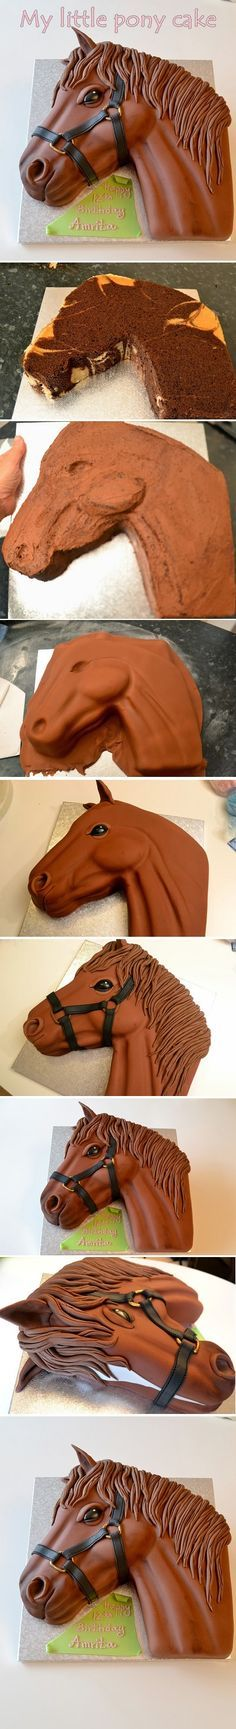 Horse cake ( I would feel bad cutting it) And it looks so realistic! I really like marble cake and chocolate frosting ; Food Cakes, Cupcake Cakes, Car Cakes, Cake Decorating Tutorials, Cookie Decorating, Watermelon Cake Recipe, Decoration Patisserie, Horse Cake, Animal Cakes